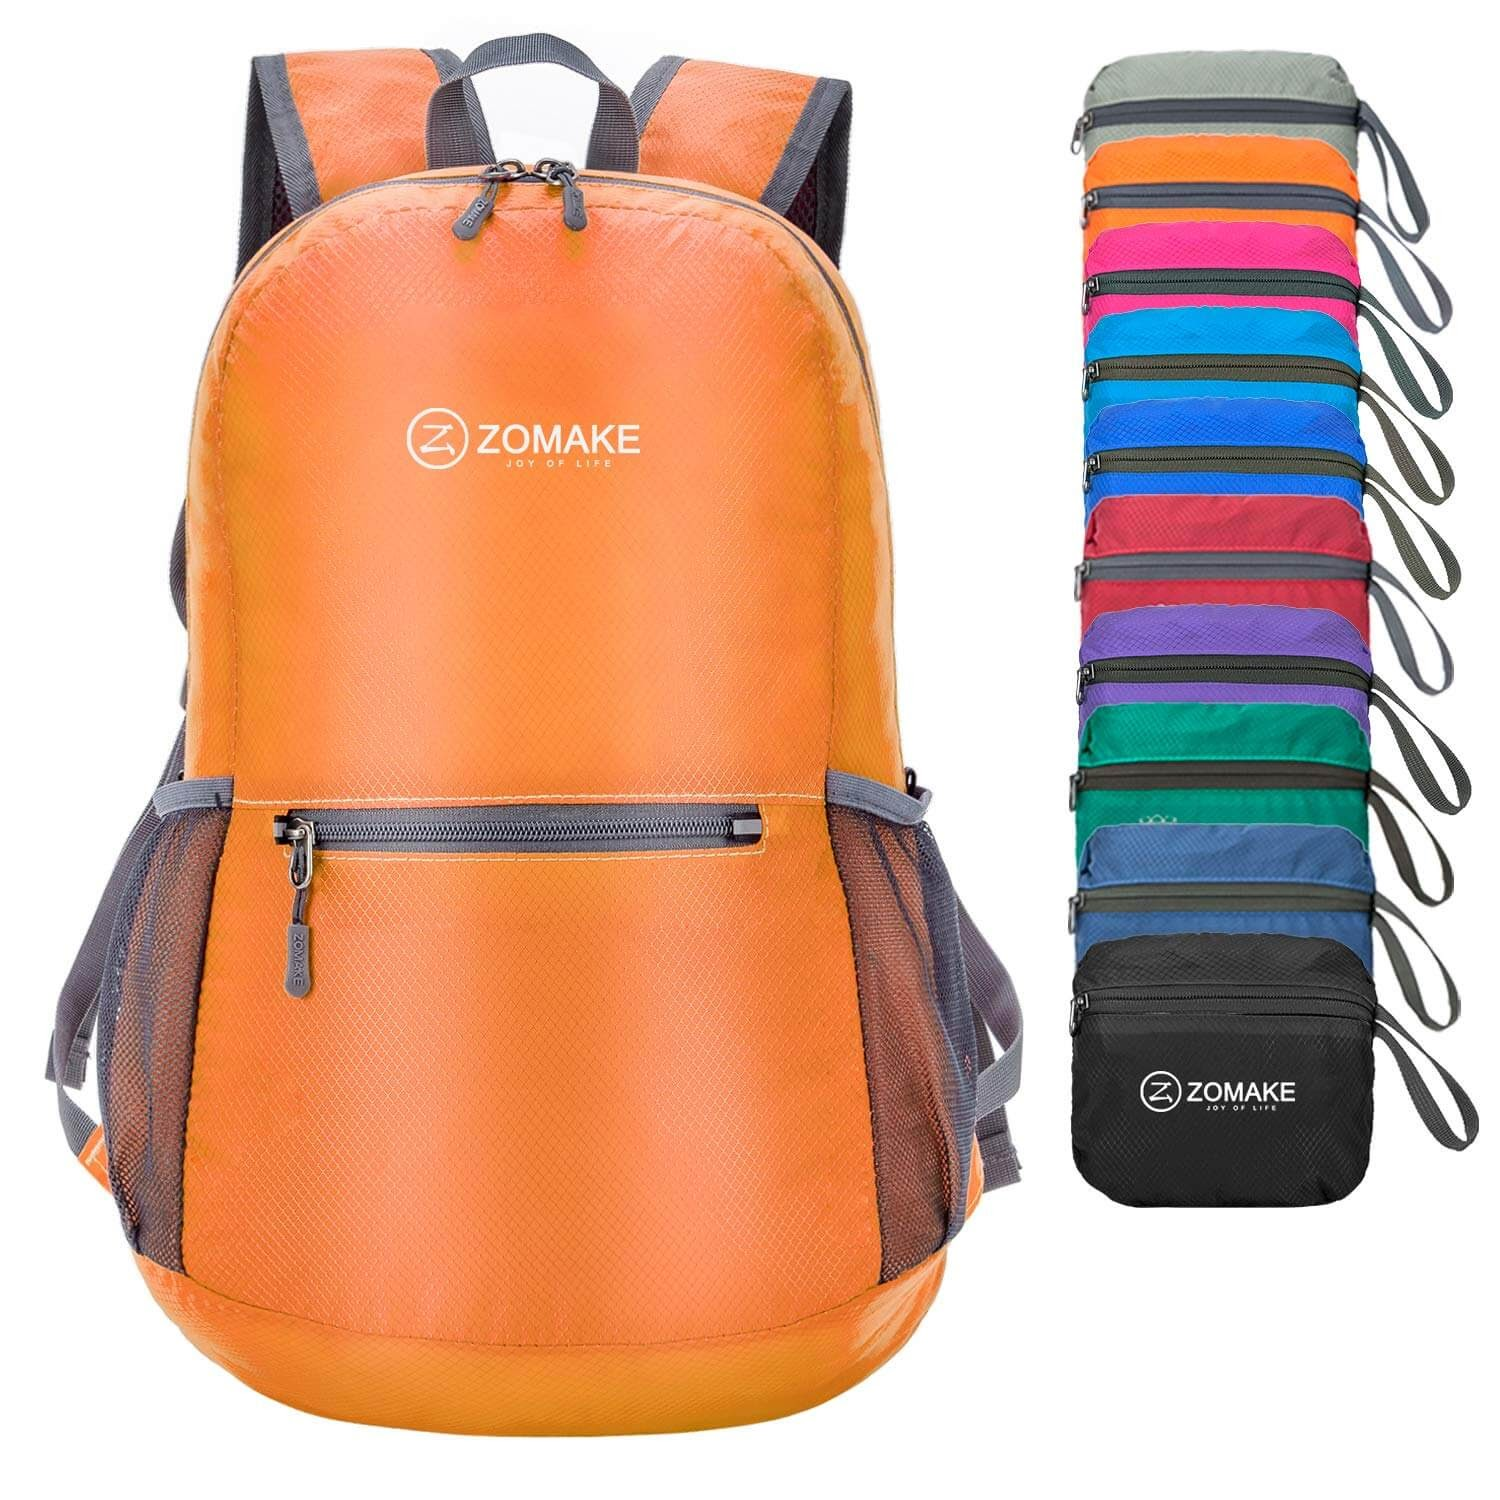 ZOMAKE Ultra Lightweight Packable Water-Resistant Backpack